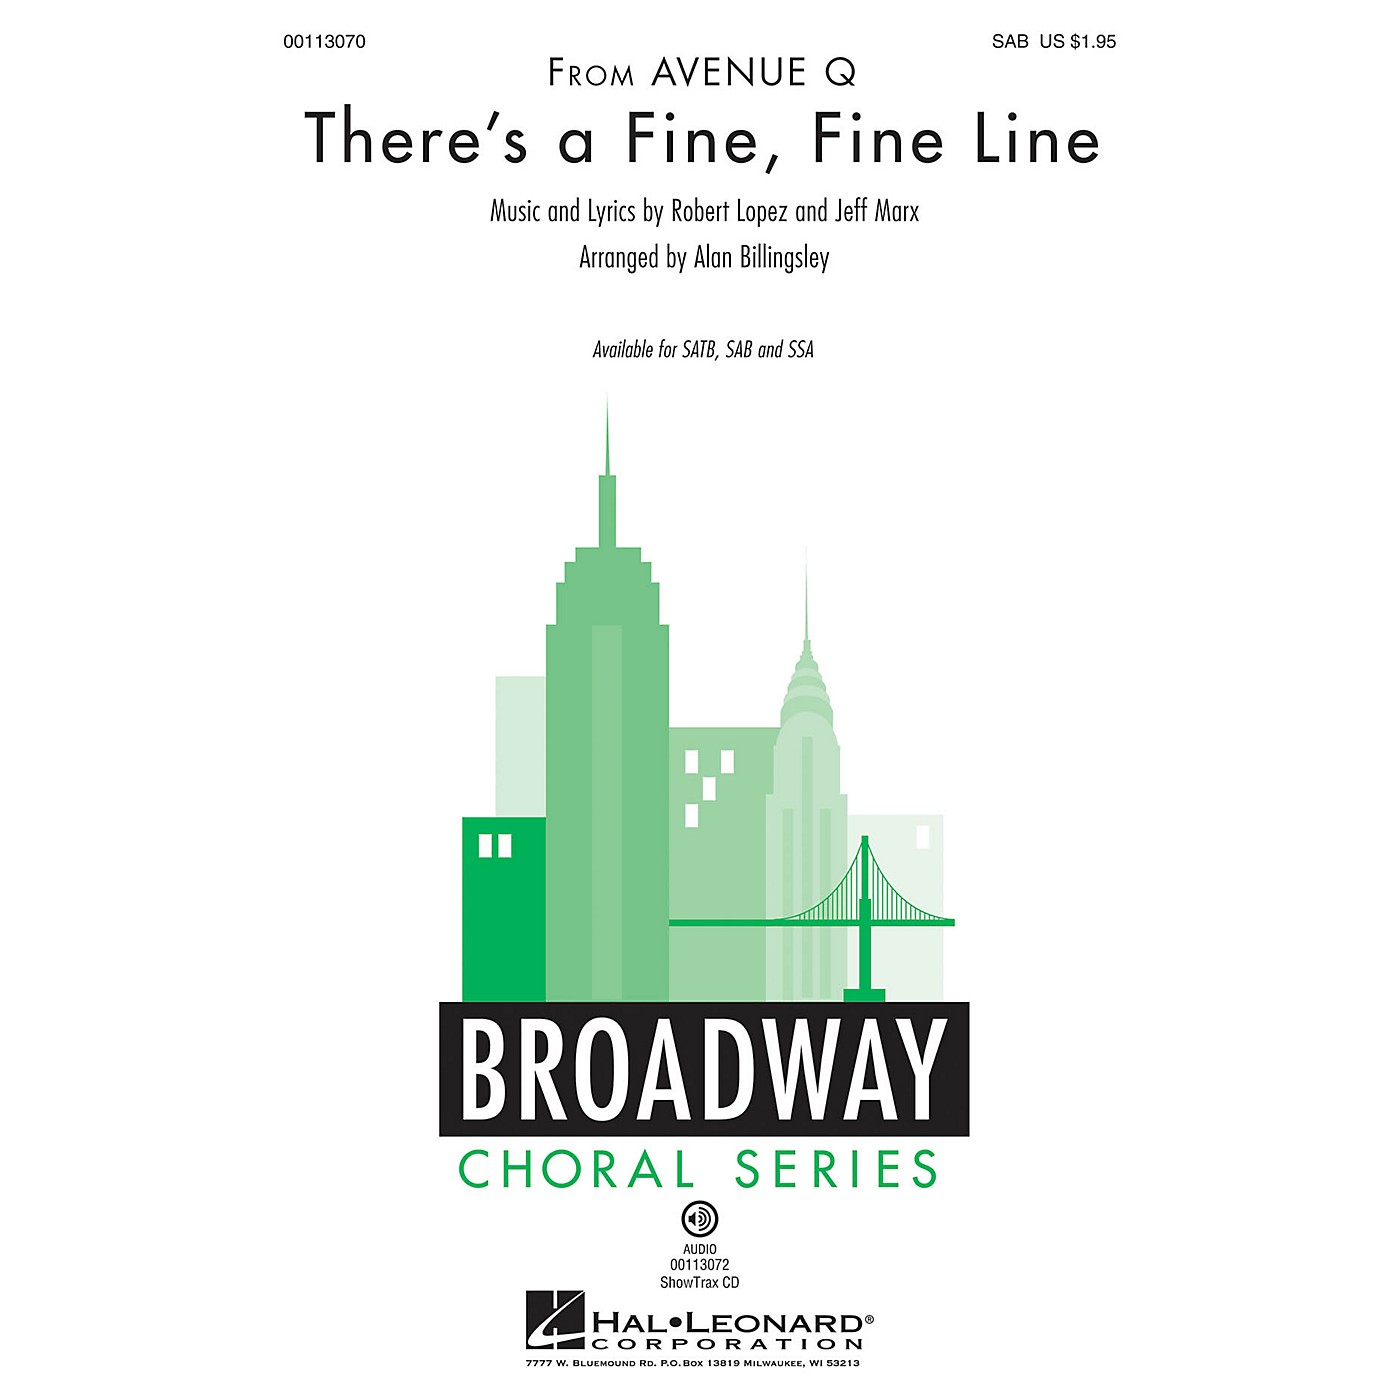 Hal Leonard There's a Fine, Fine Line (from Avenue Q) SAB by Avenue Q arranged by Alan Billingsley thumbnail